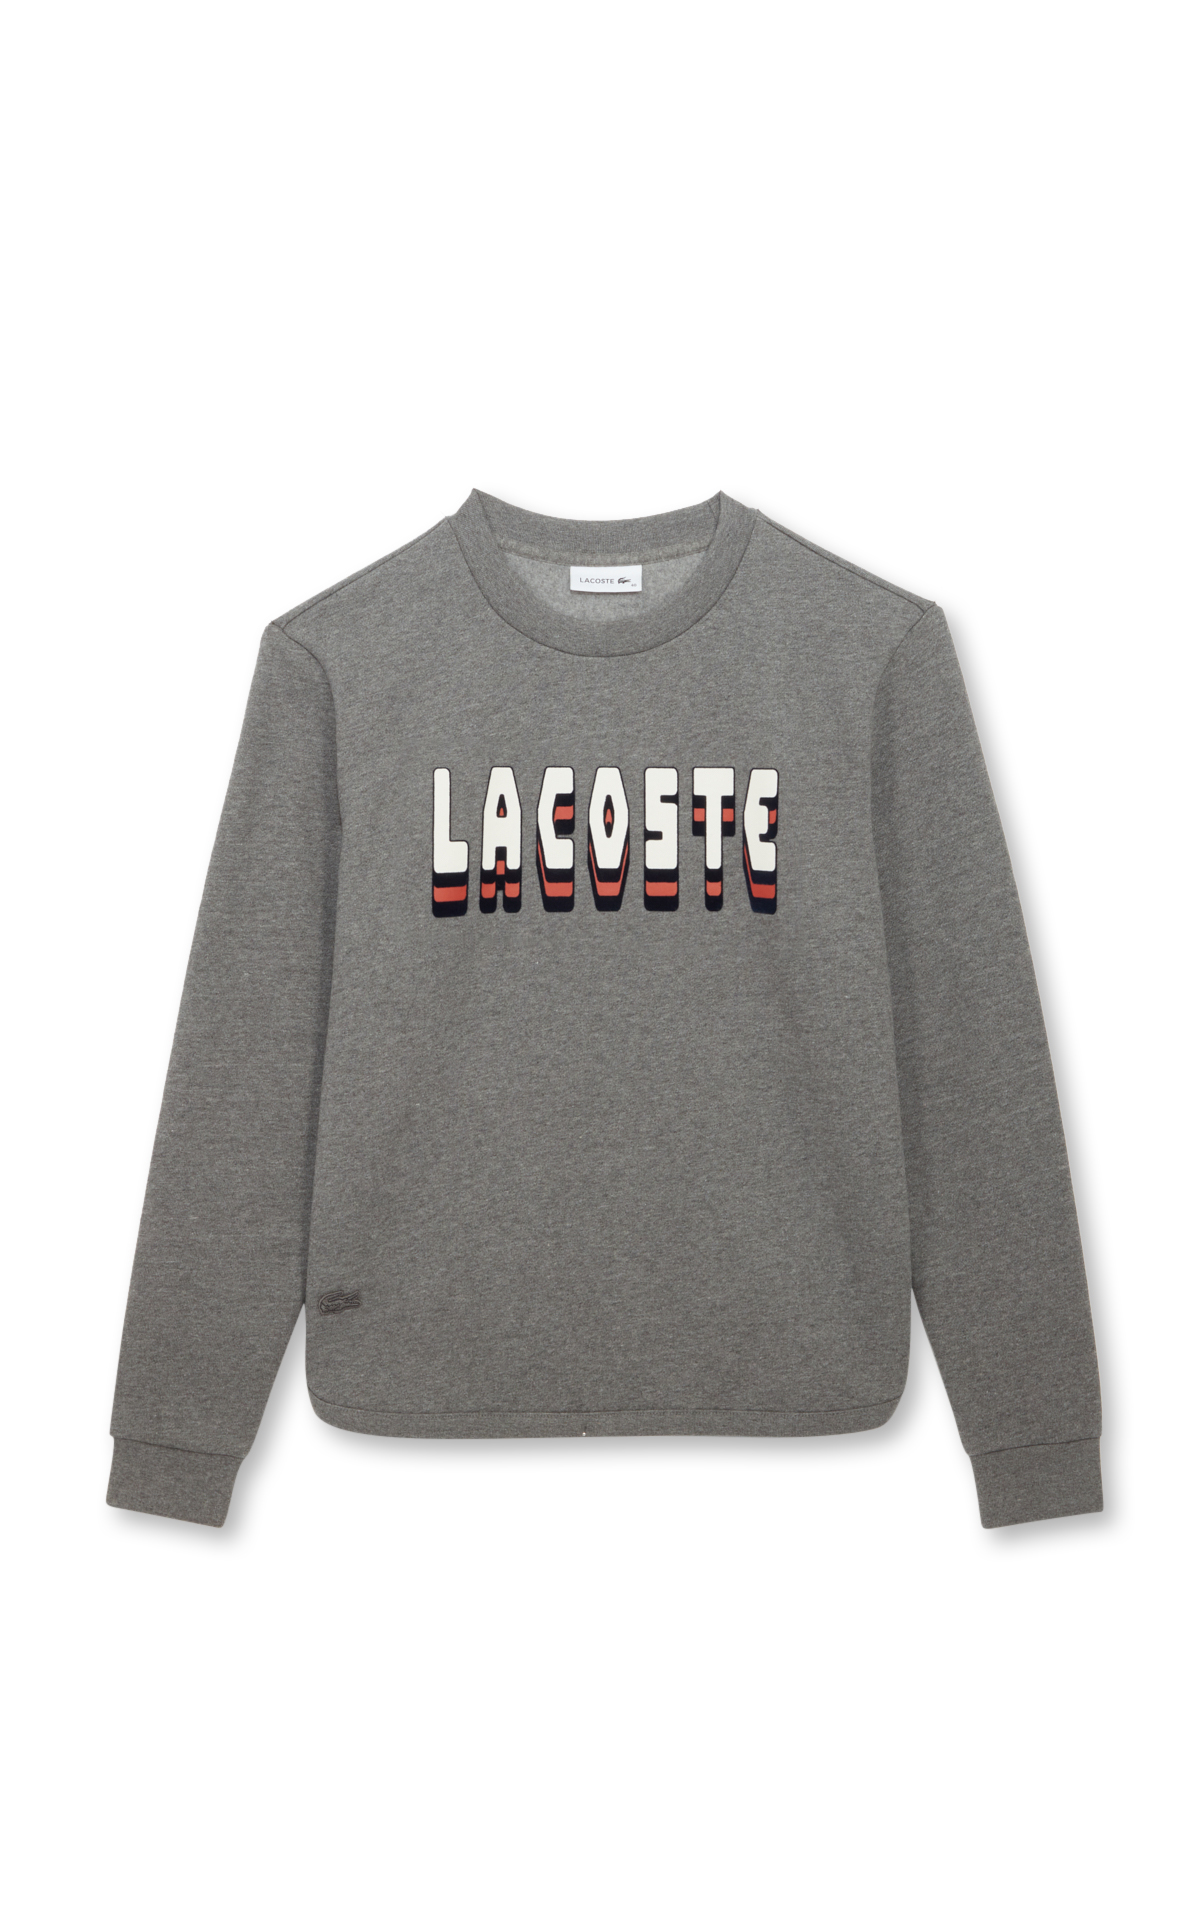 Lacoste Women's mottled grey sweatshirt with logo